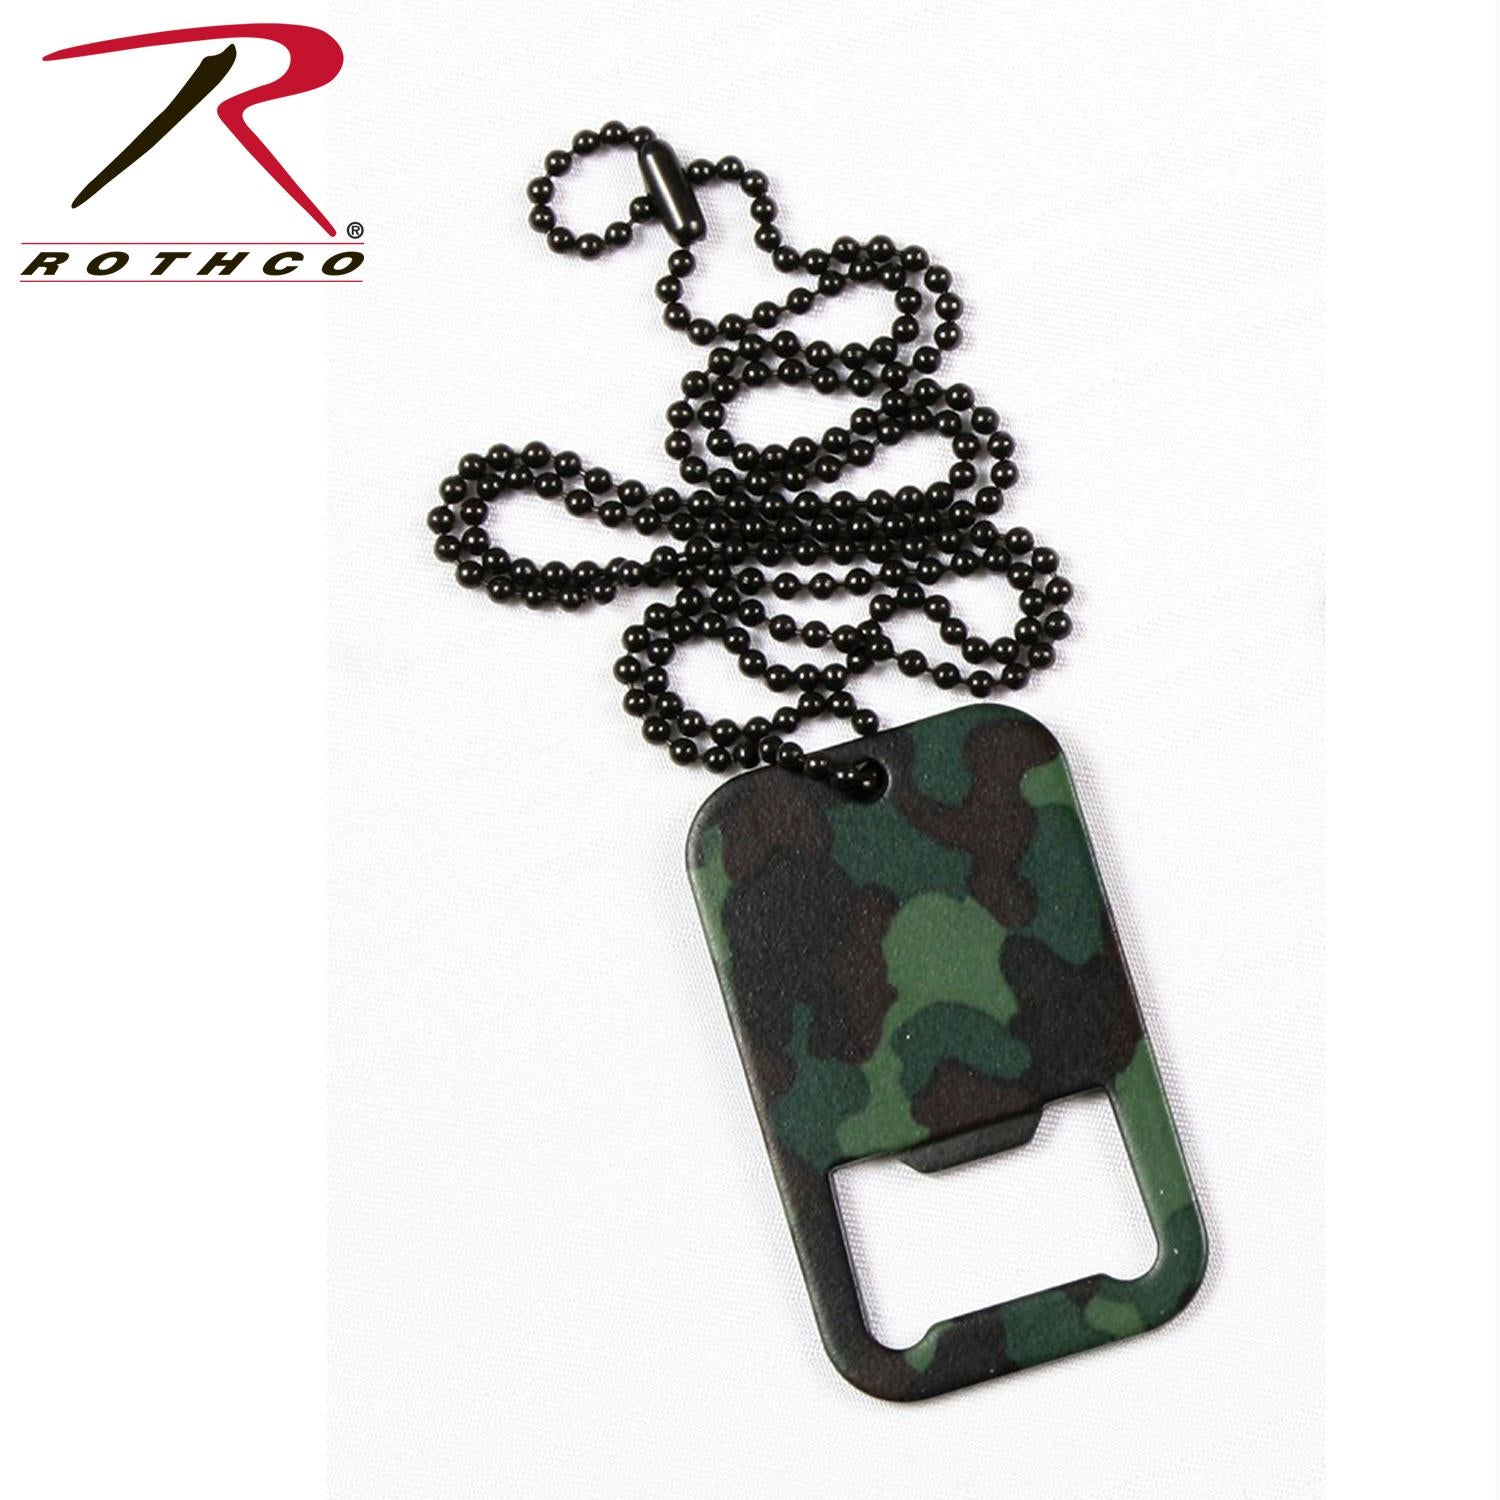 Rothco Dog Tag Bottle Opener With Chain - Woodland Camo